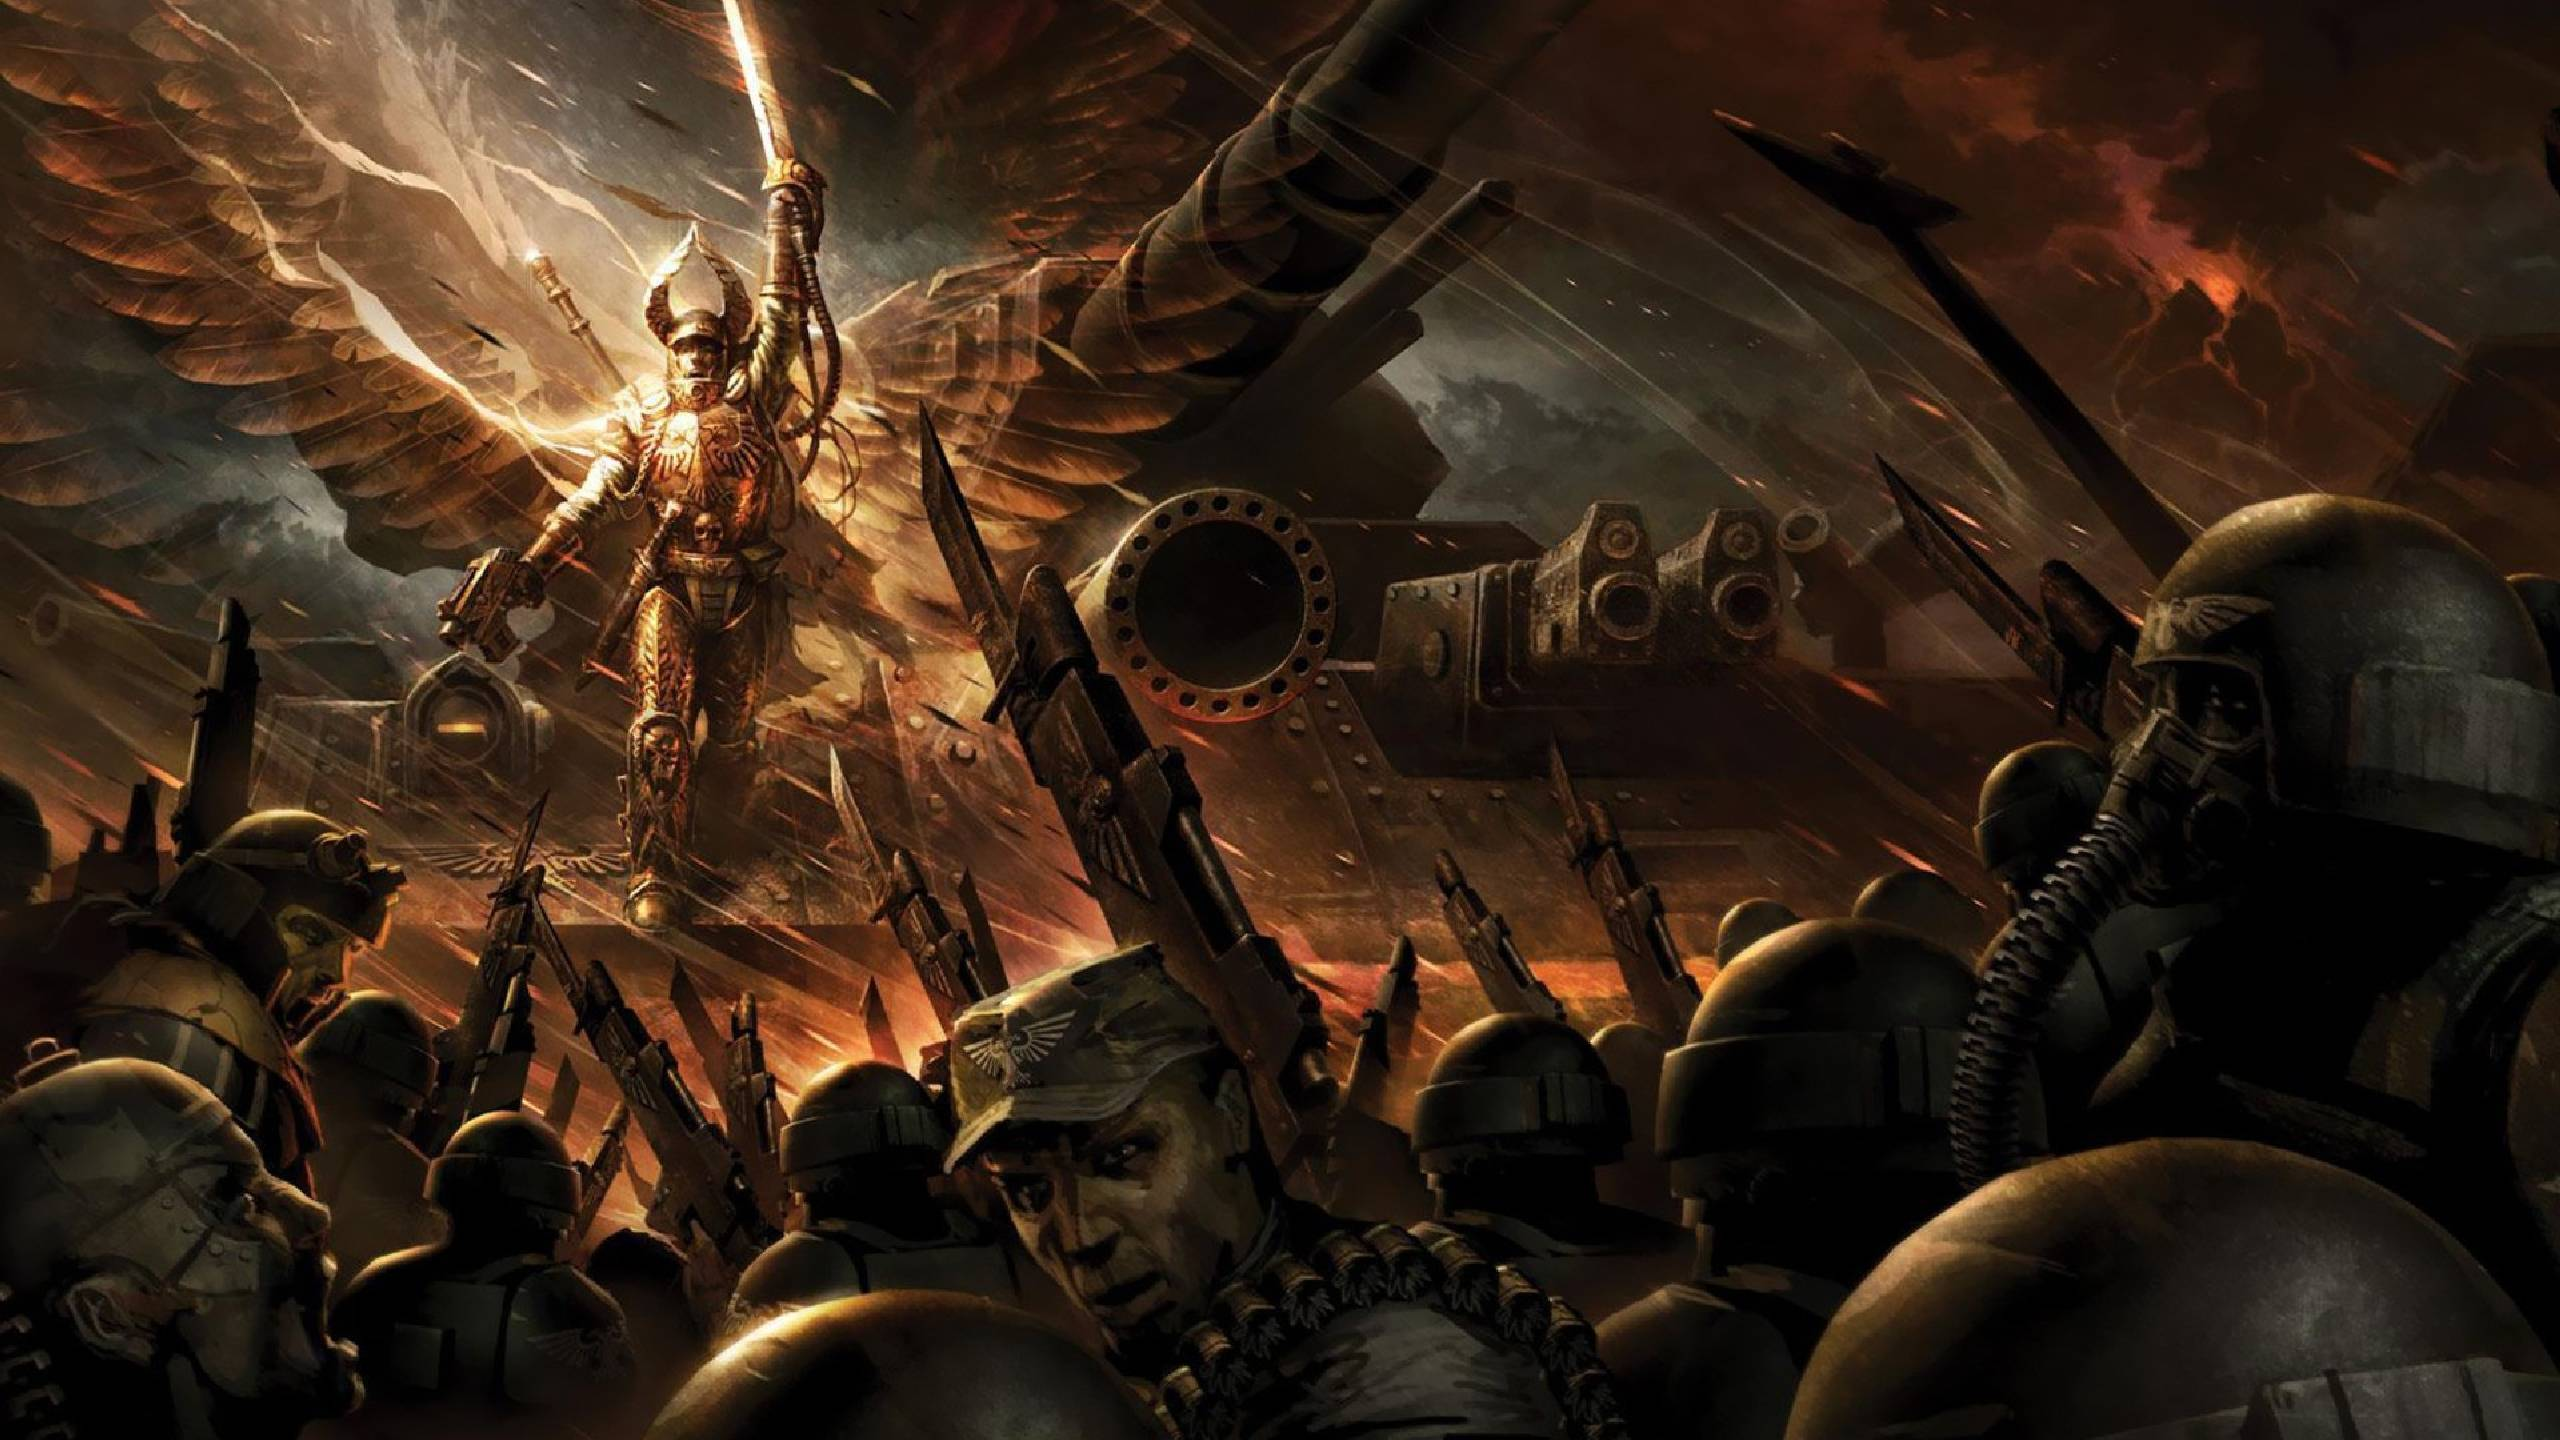 warhammer 40k wallpaper 1680x1050 - photo #8